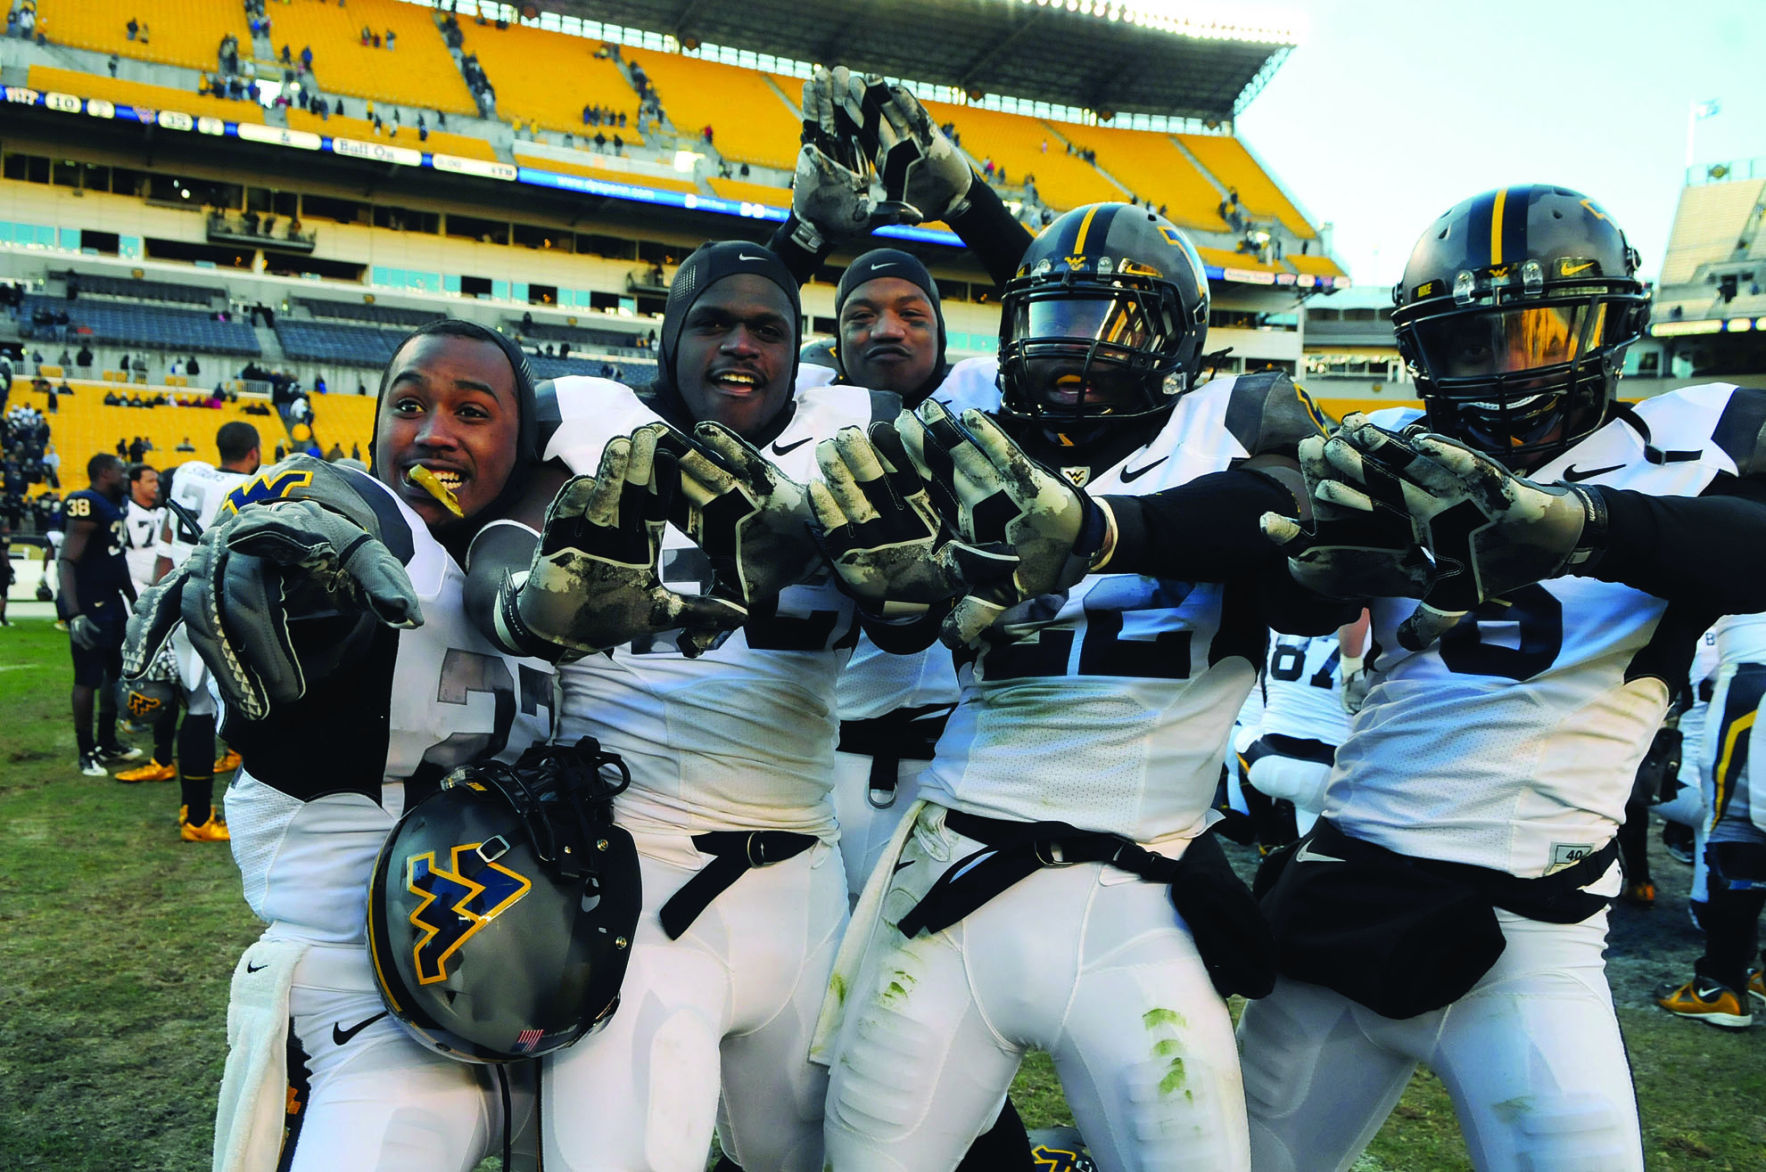 Mountaineers Celebrate After Defeating Pittsburgh Nov. 26, 2010 At The  Second To Last Backyard Brawl.